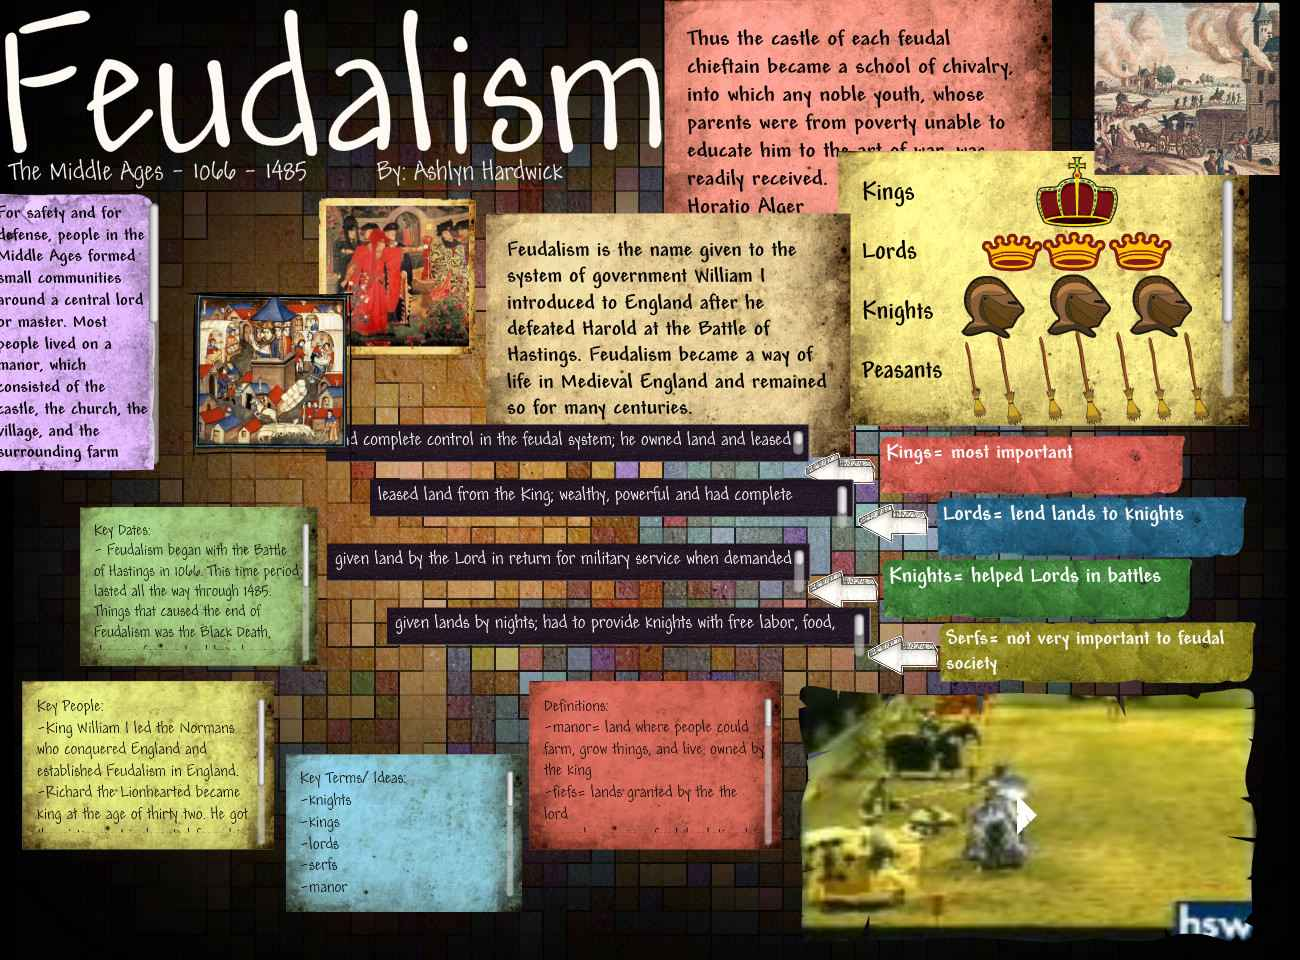 feudalism essays of the middle ages